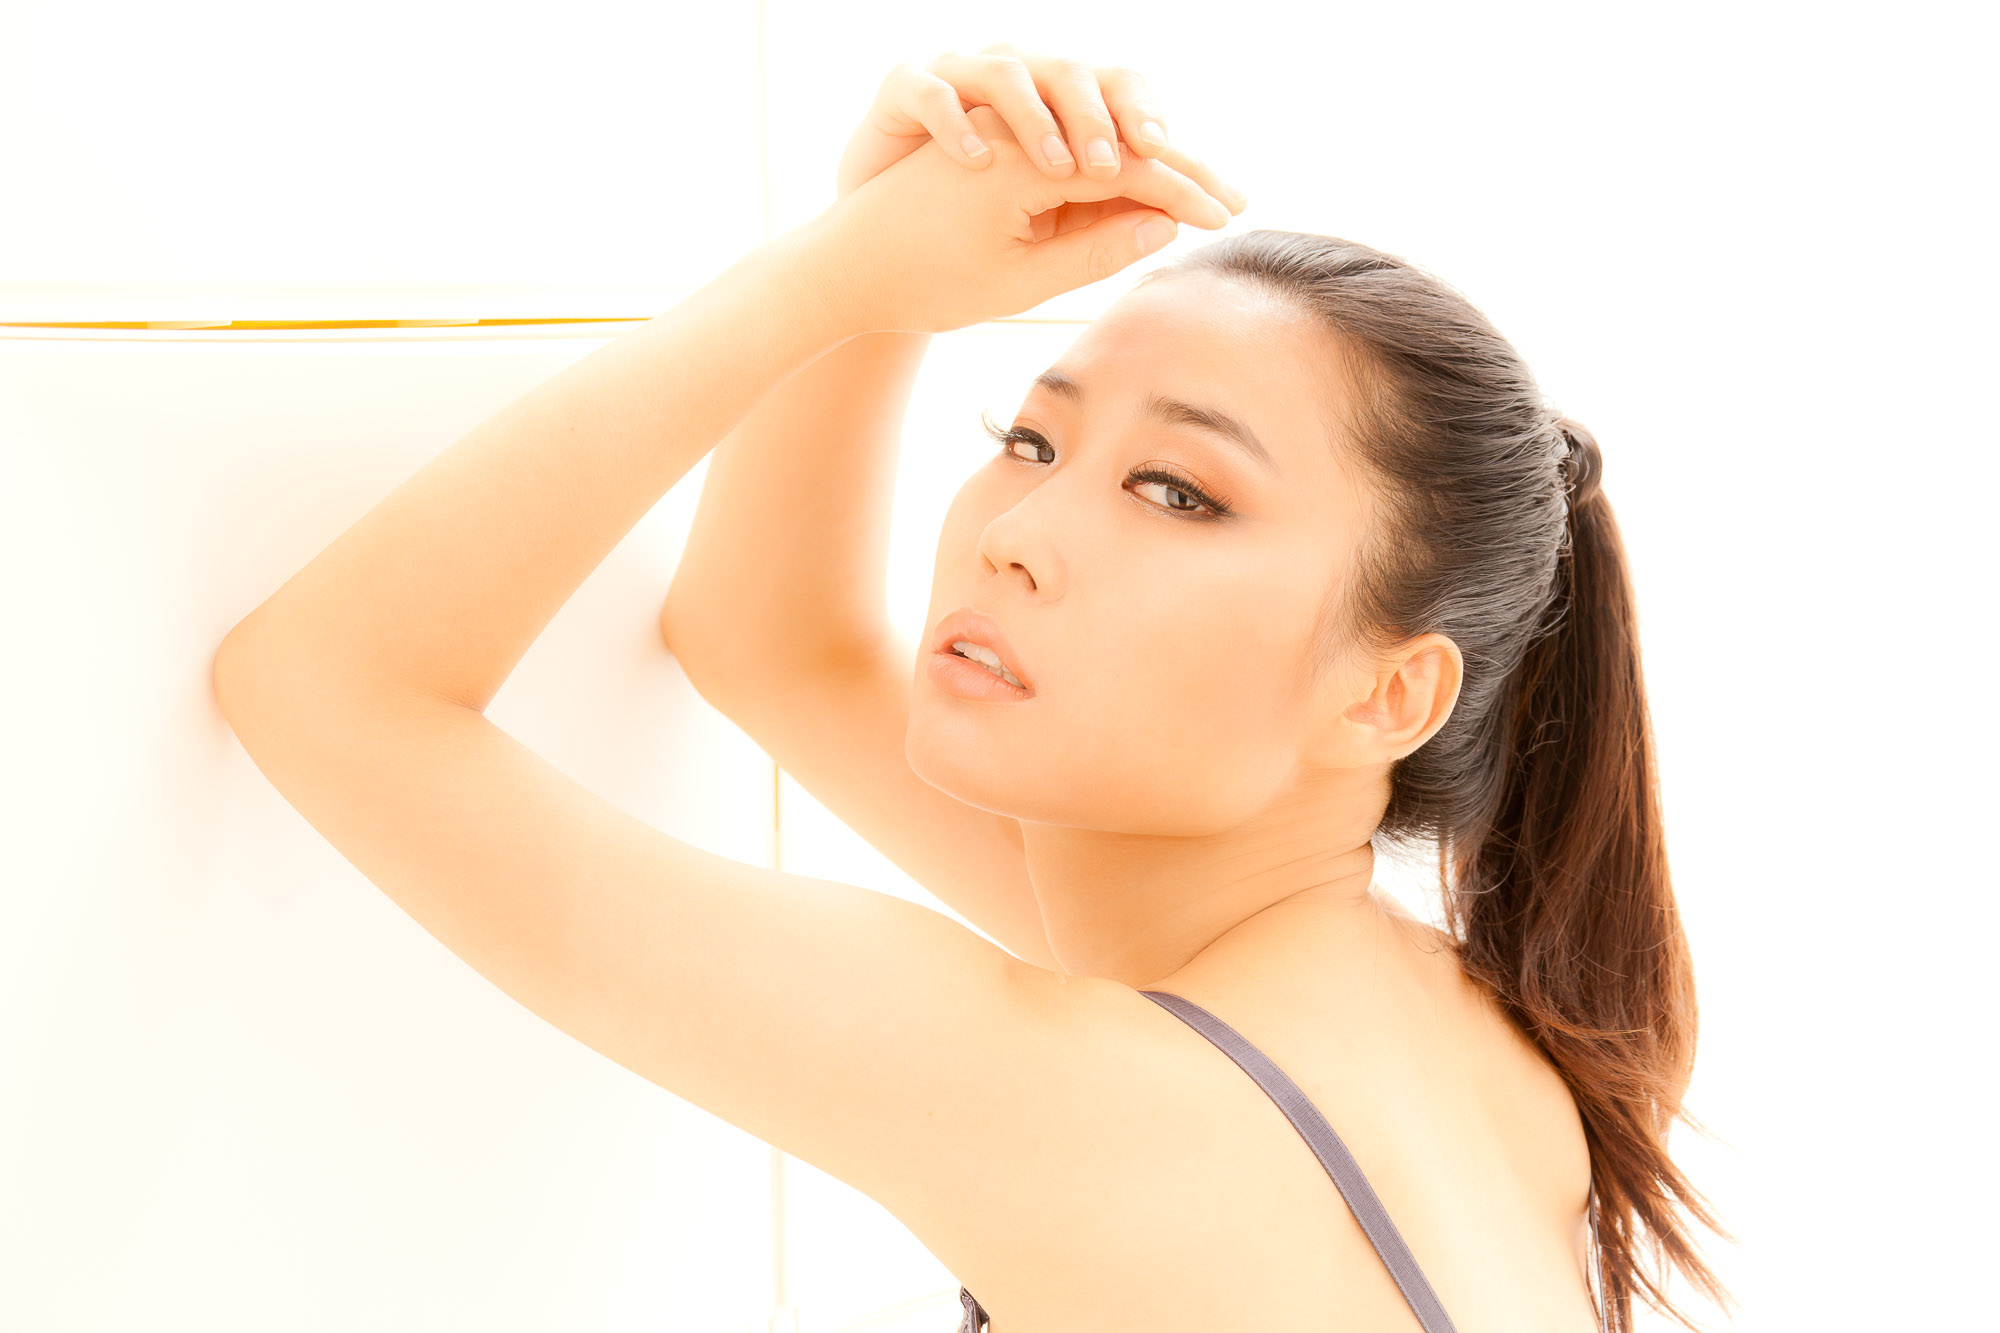 photography model pose 2